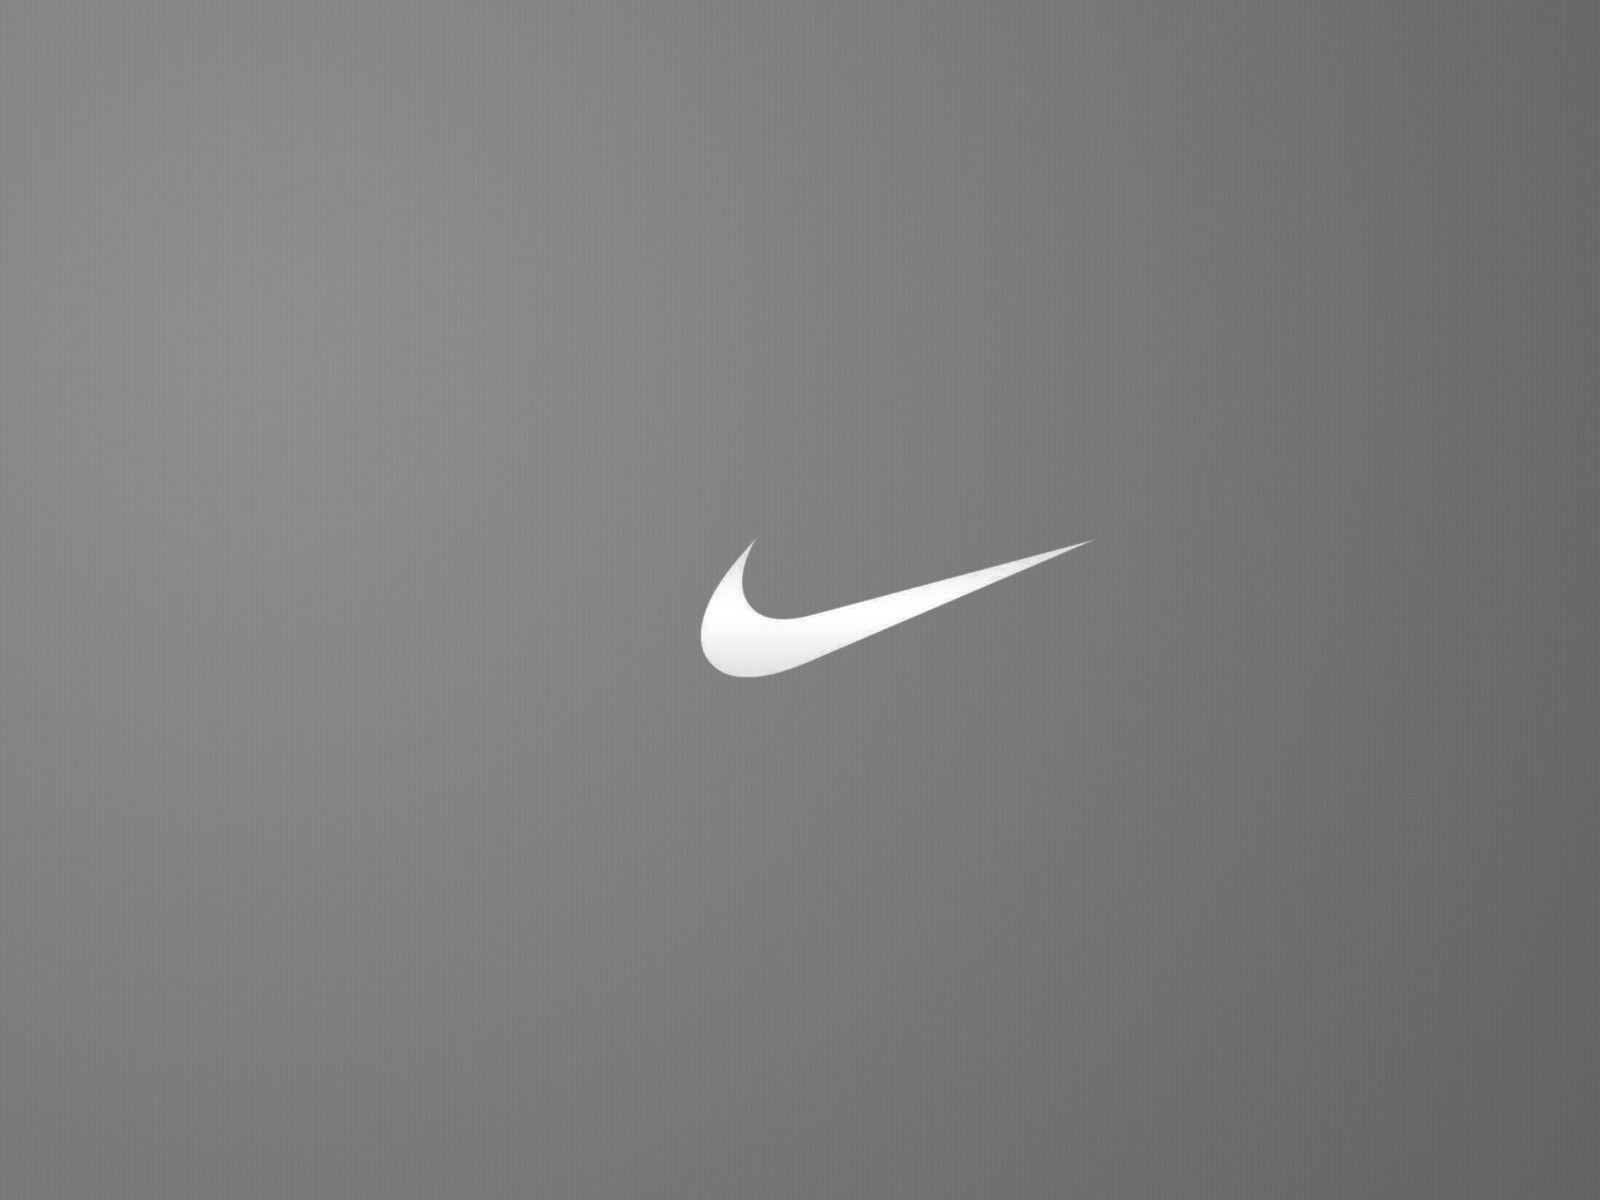 Nike Motivational Quotes Iphone Wallpaper Nike Wallpapers For Laptop Wallpaper Cave